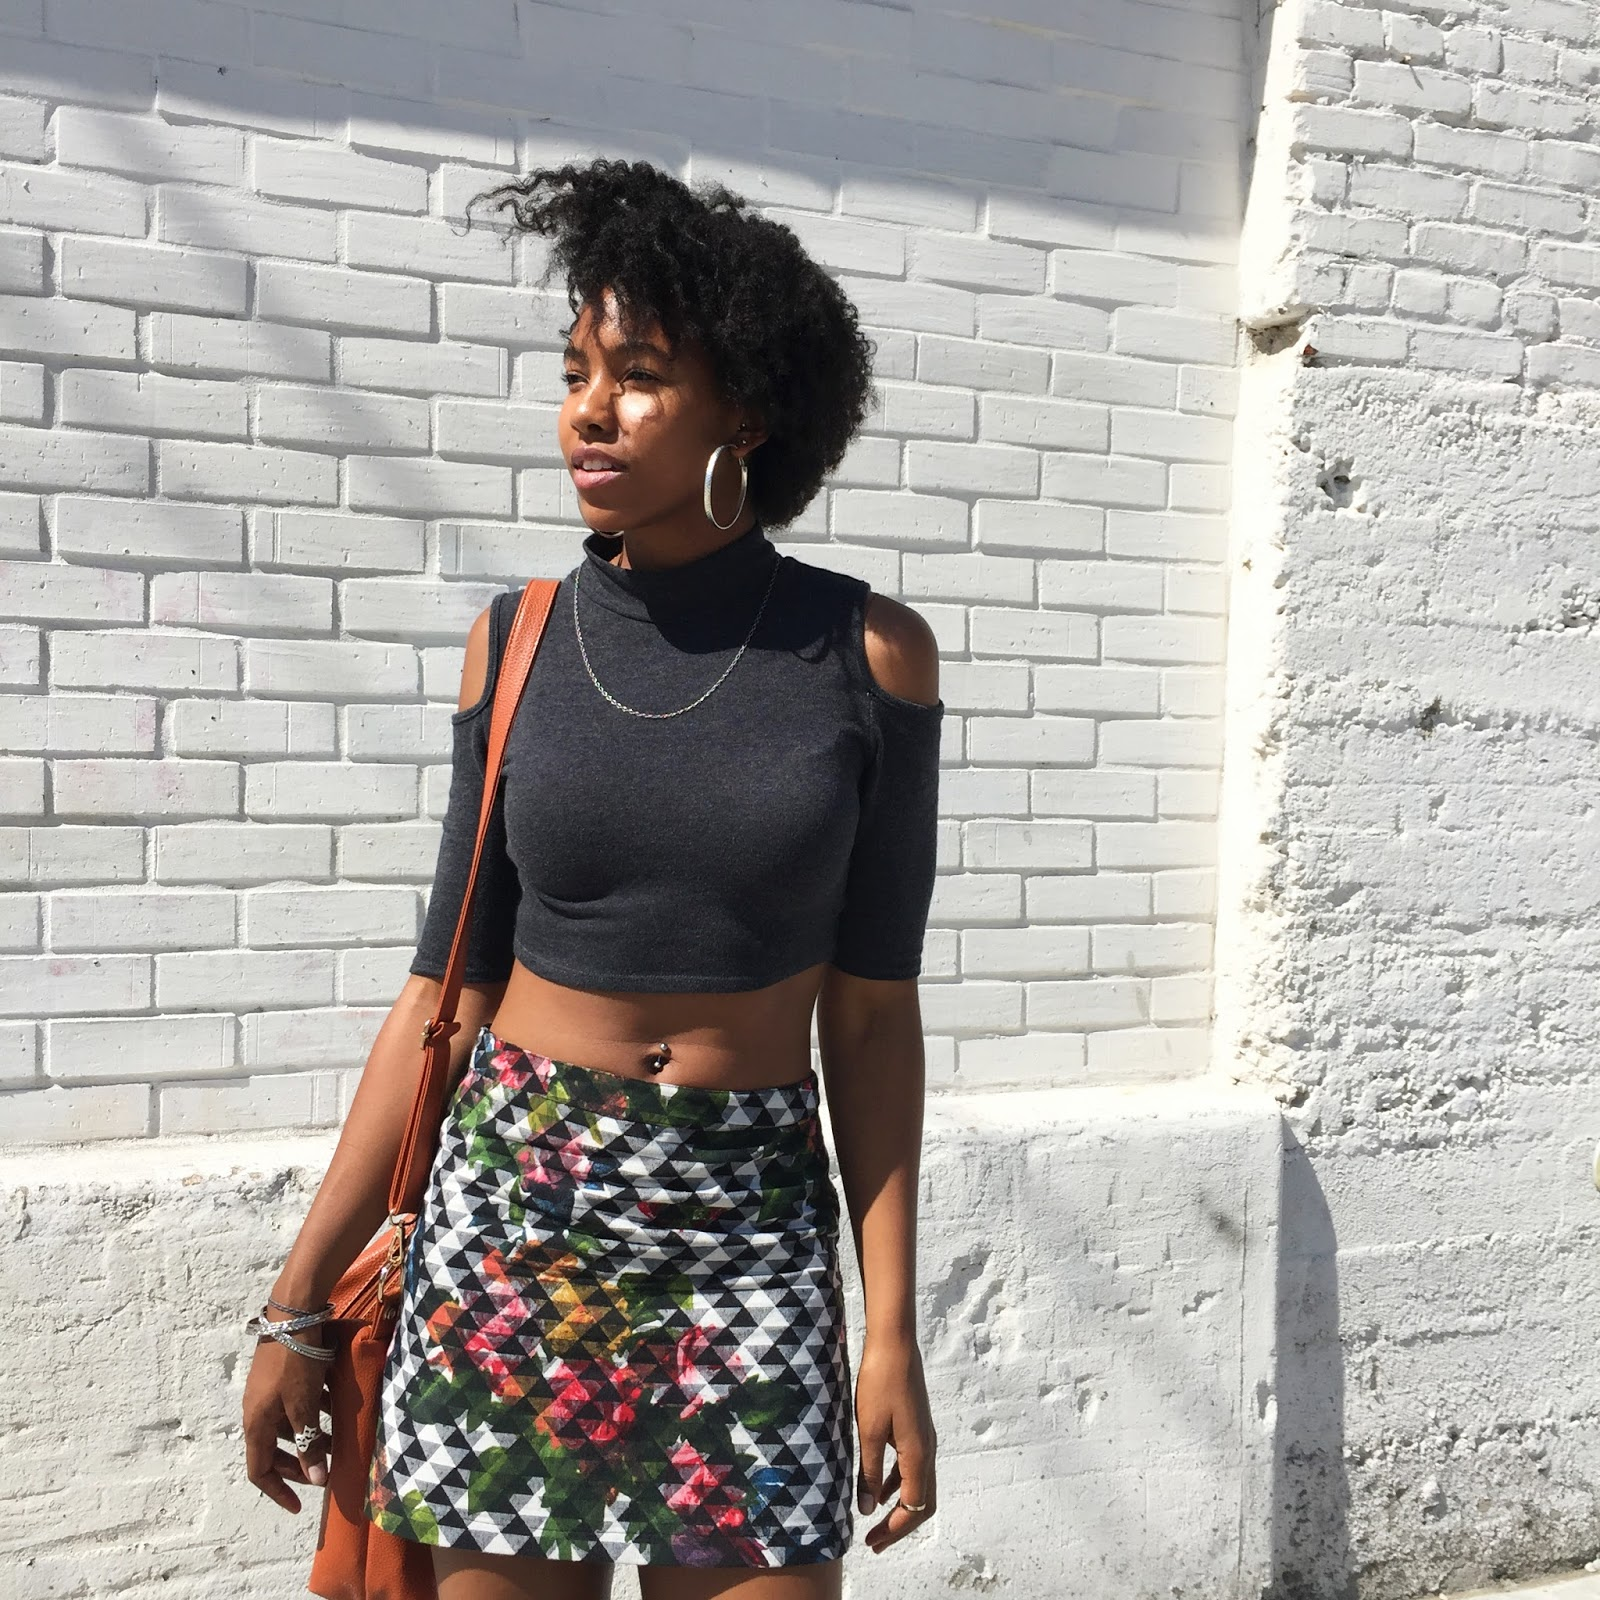 Marquise C Brown fashion natural hair fashion blogger ootd